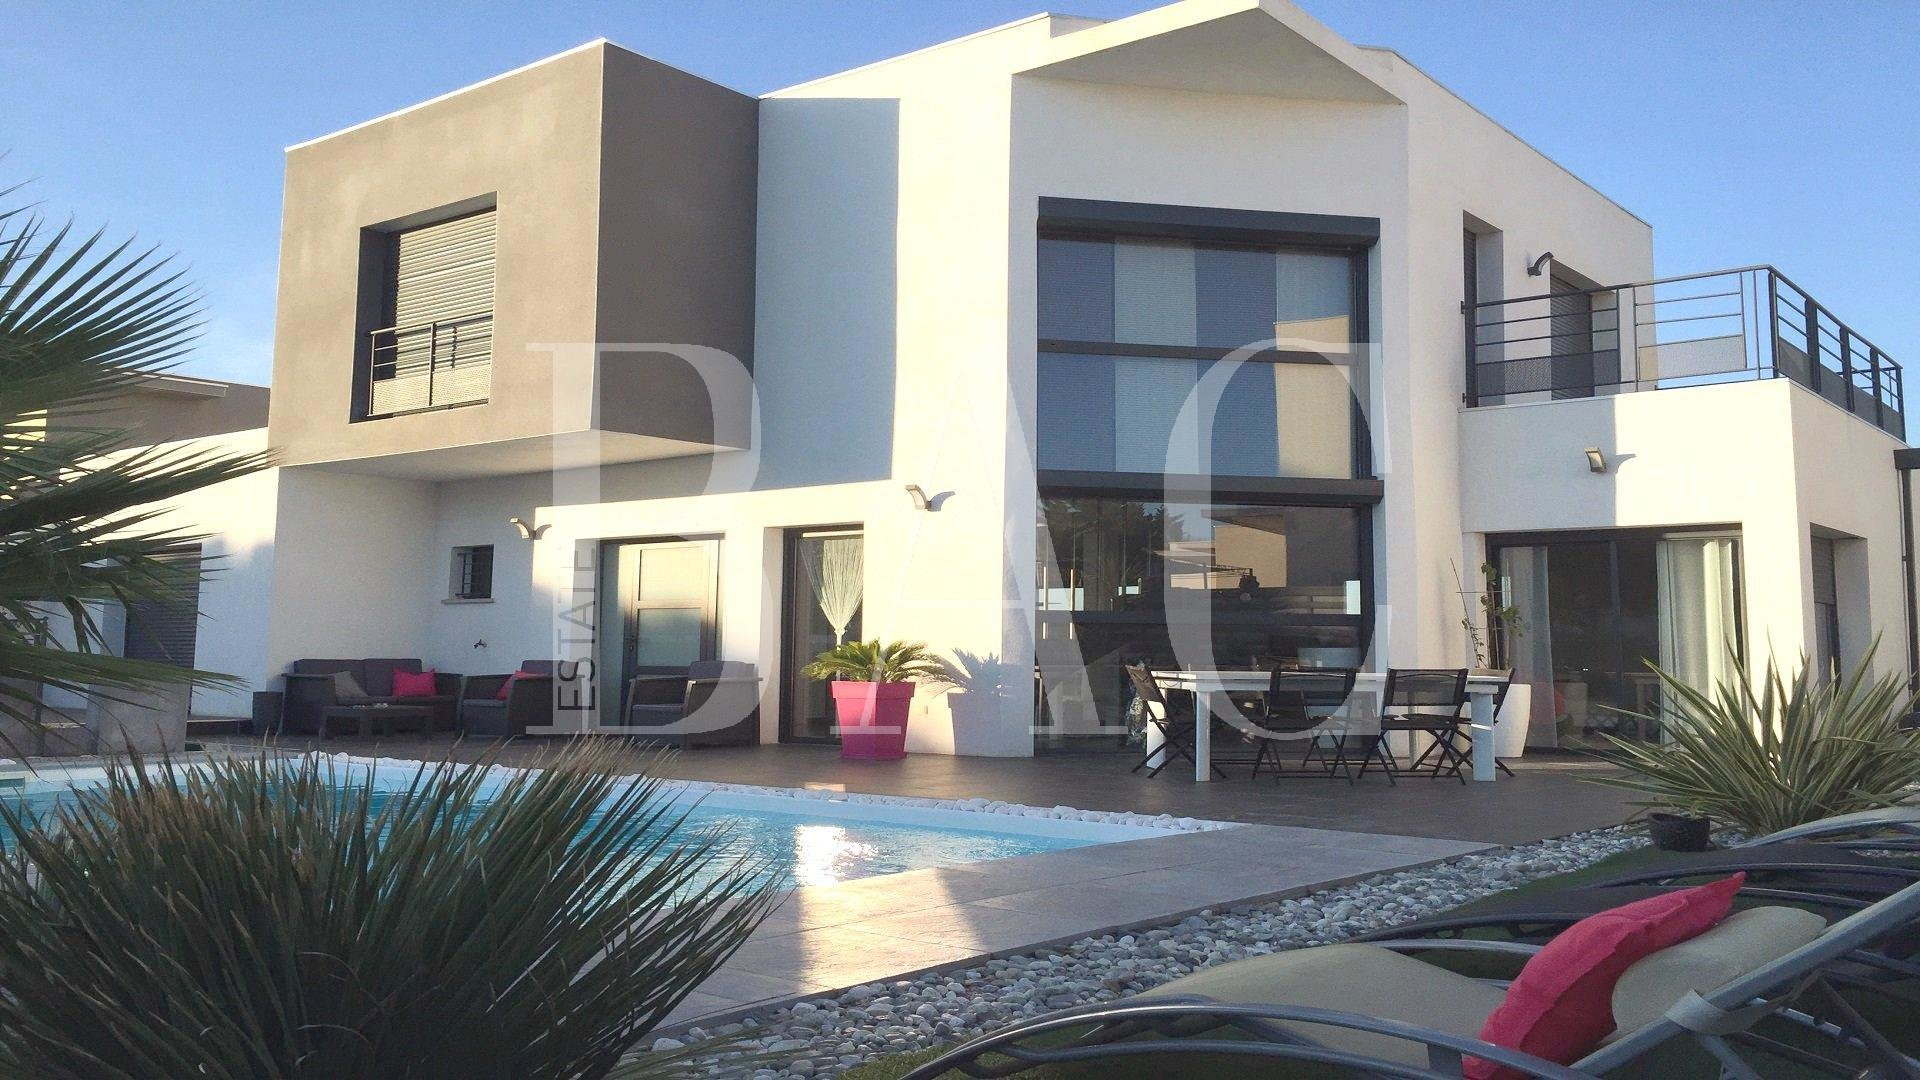 Superb architect villa near the sea in Agde